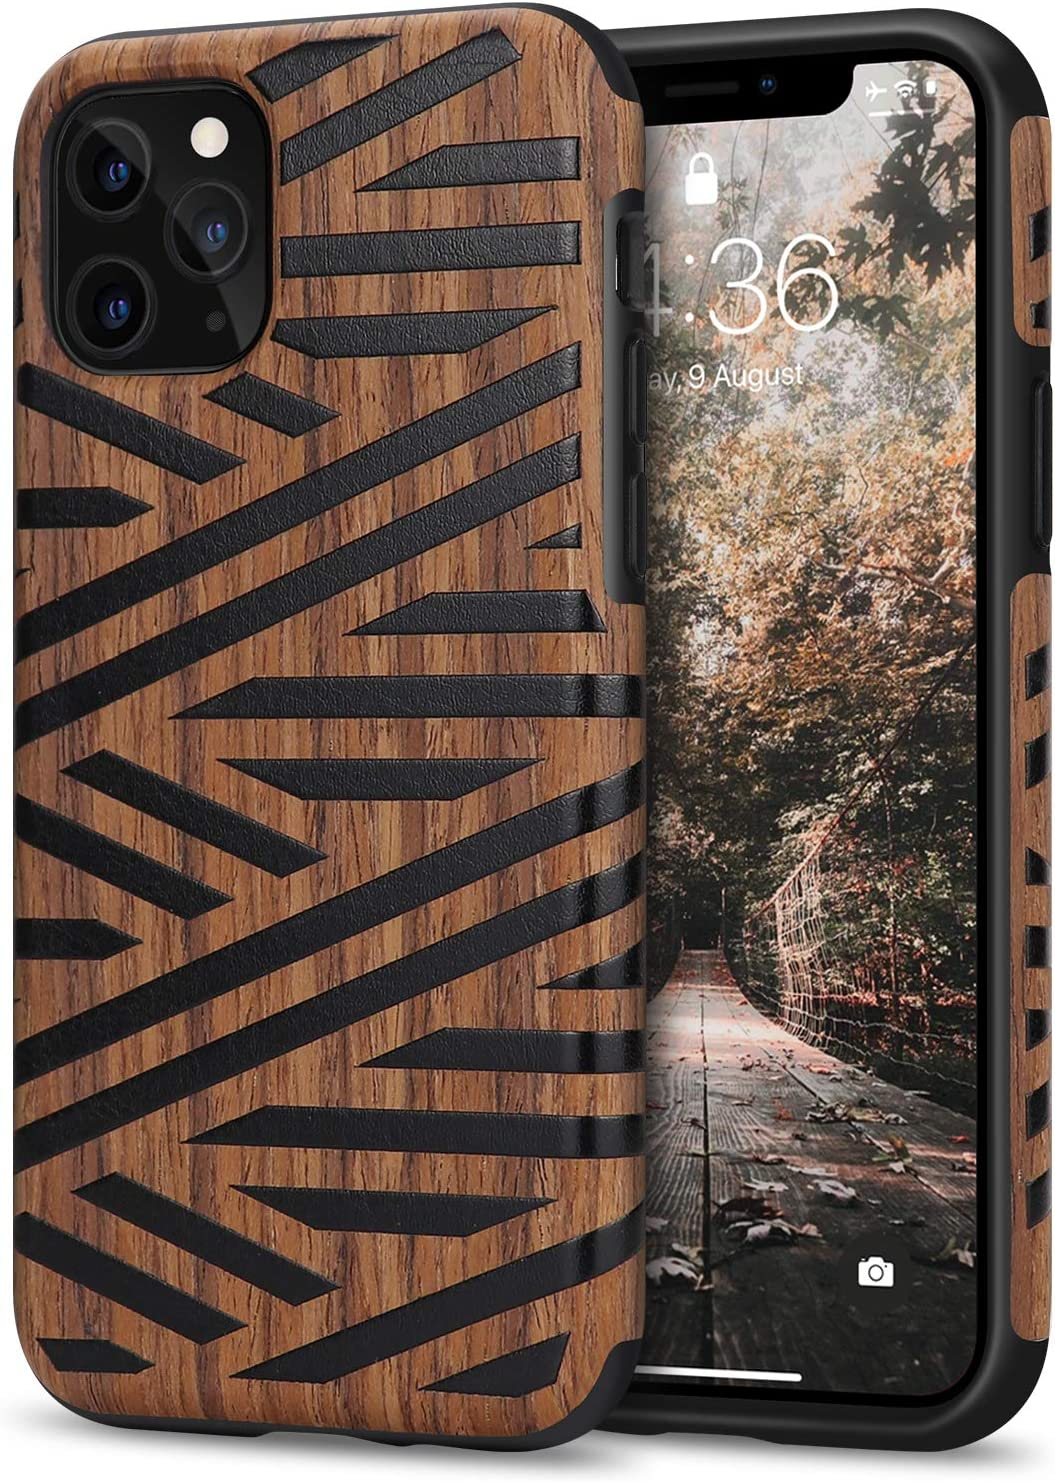 Tasikar Compatible with iPhone 11 Pro Case Easy Grip Wood Grain Design Compatible with iPhone 11 Pro (Leather & Wood)